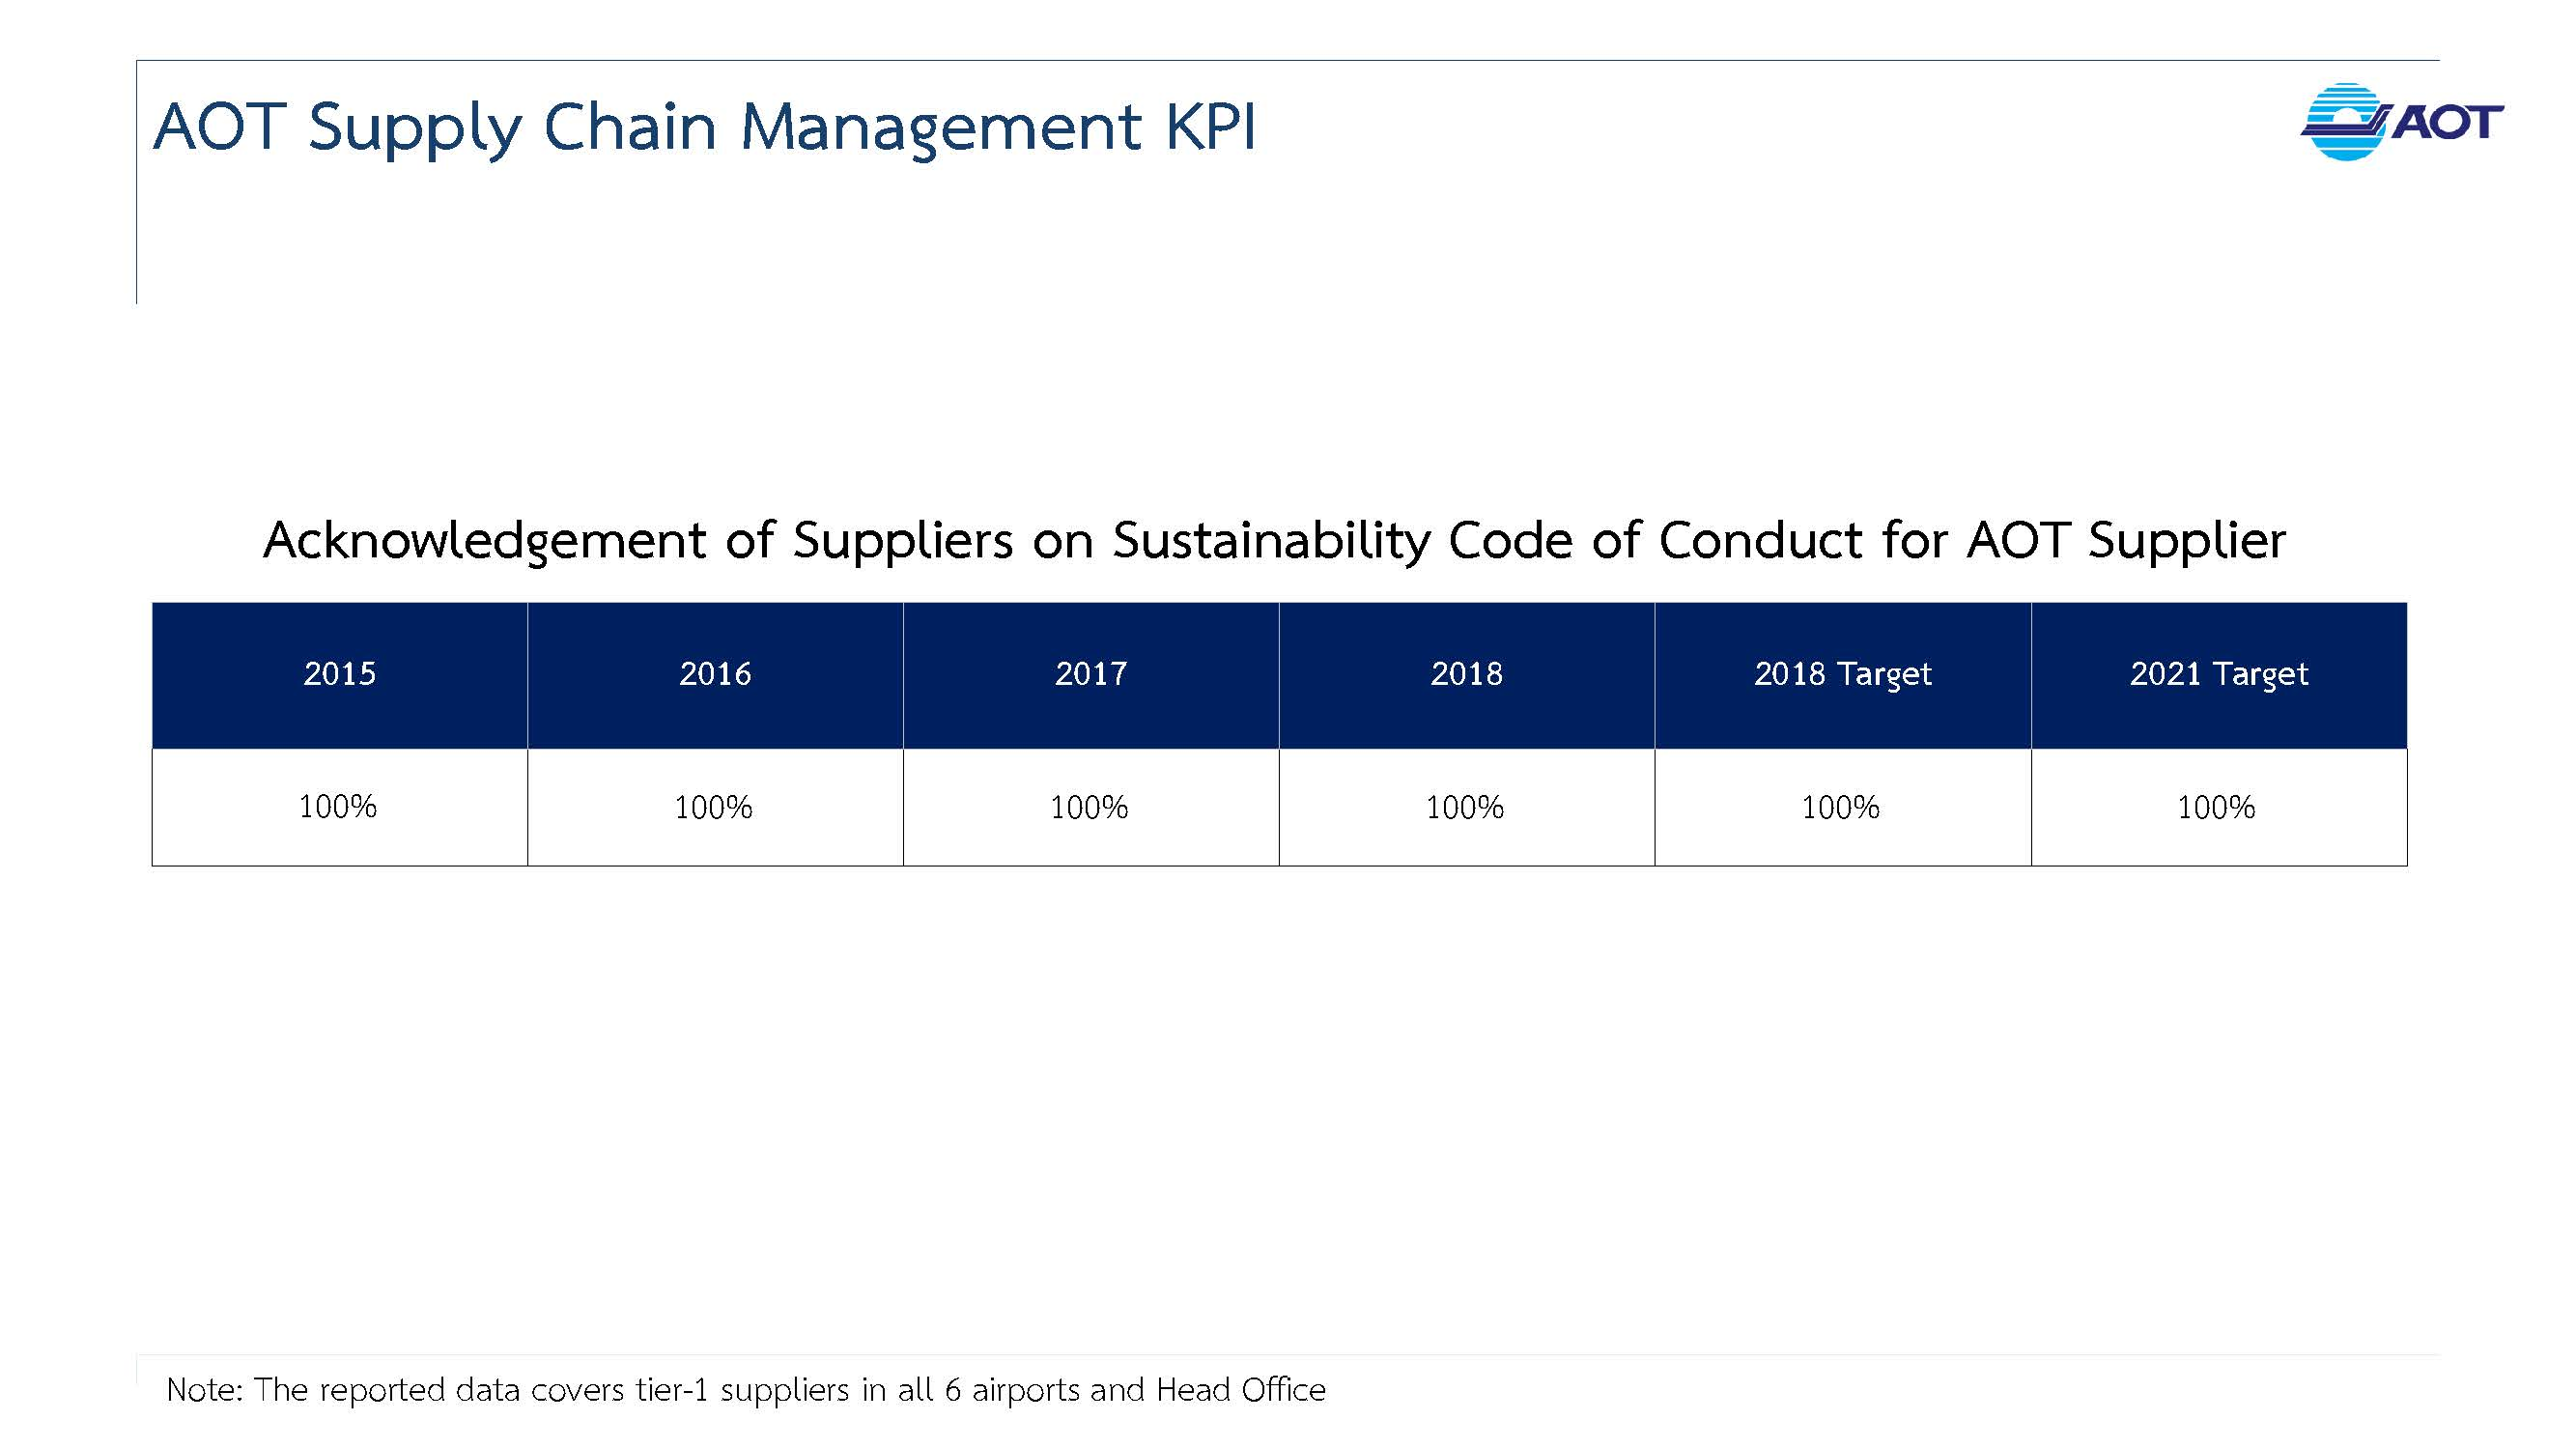 AOT Supply Chain KPI